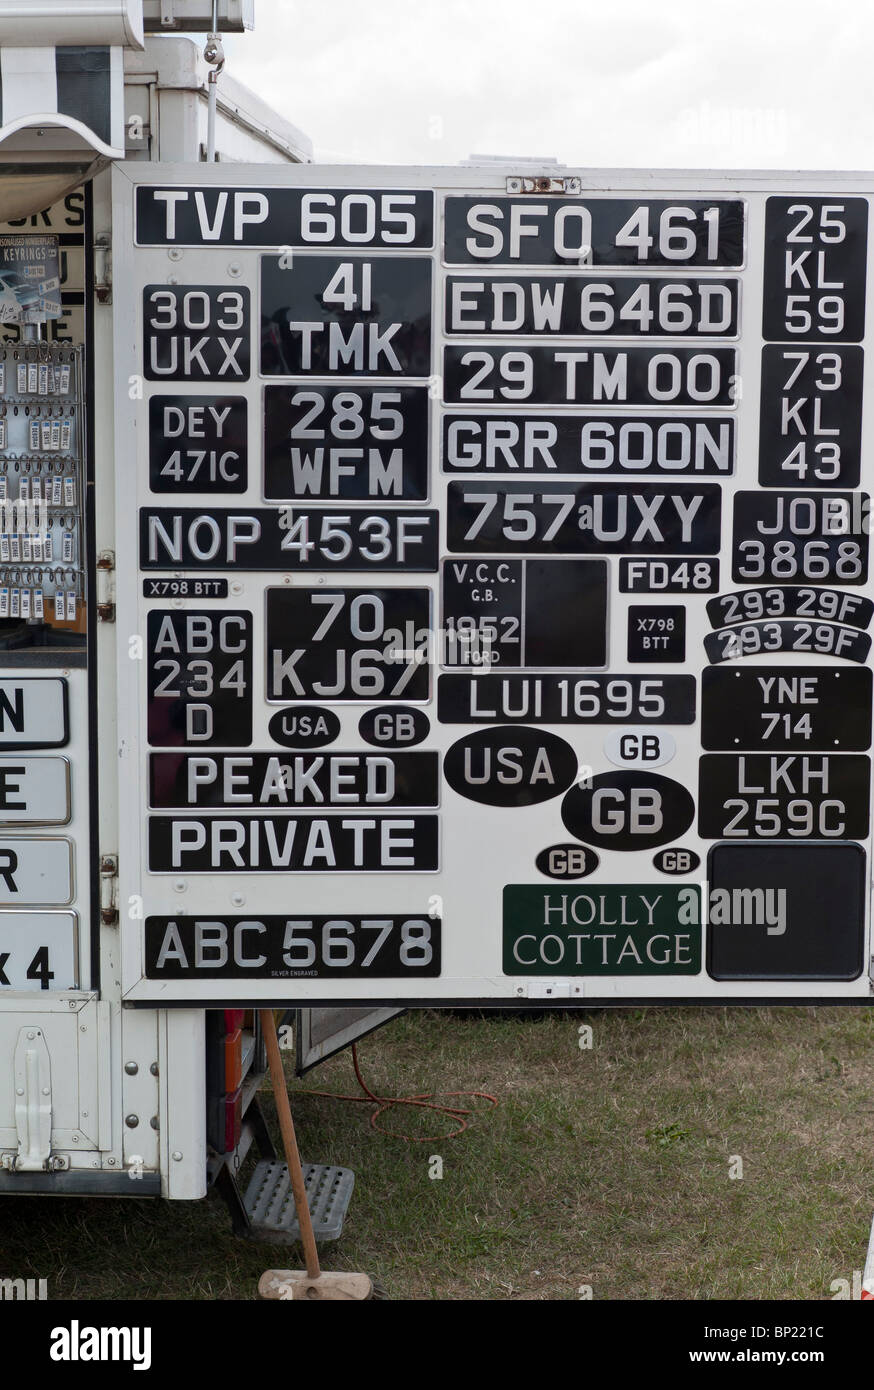 Old car vehicle number plates for sale - Stock Image